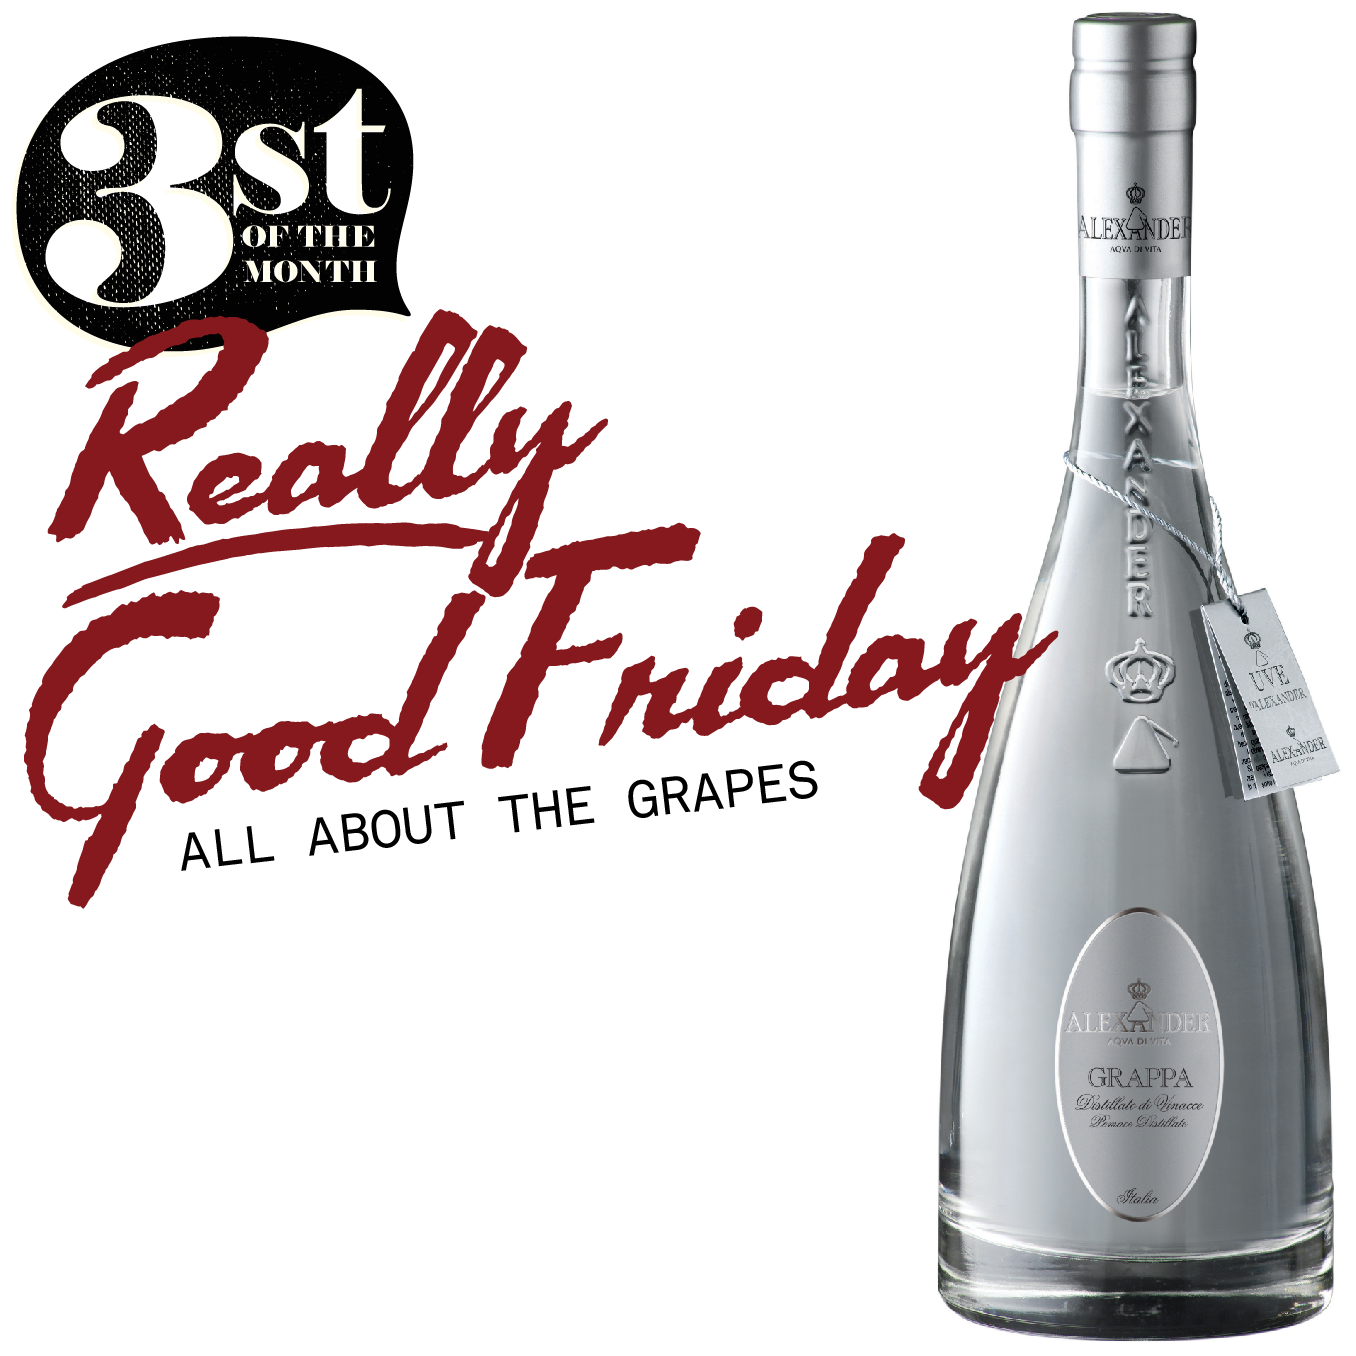 Grappa the Great | 3st of the Month